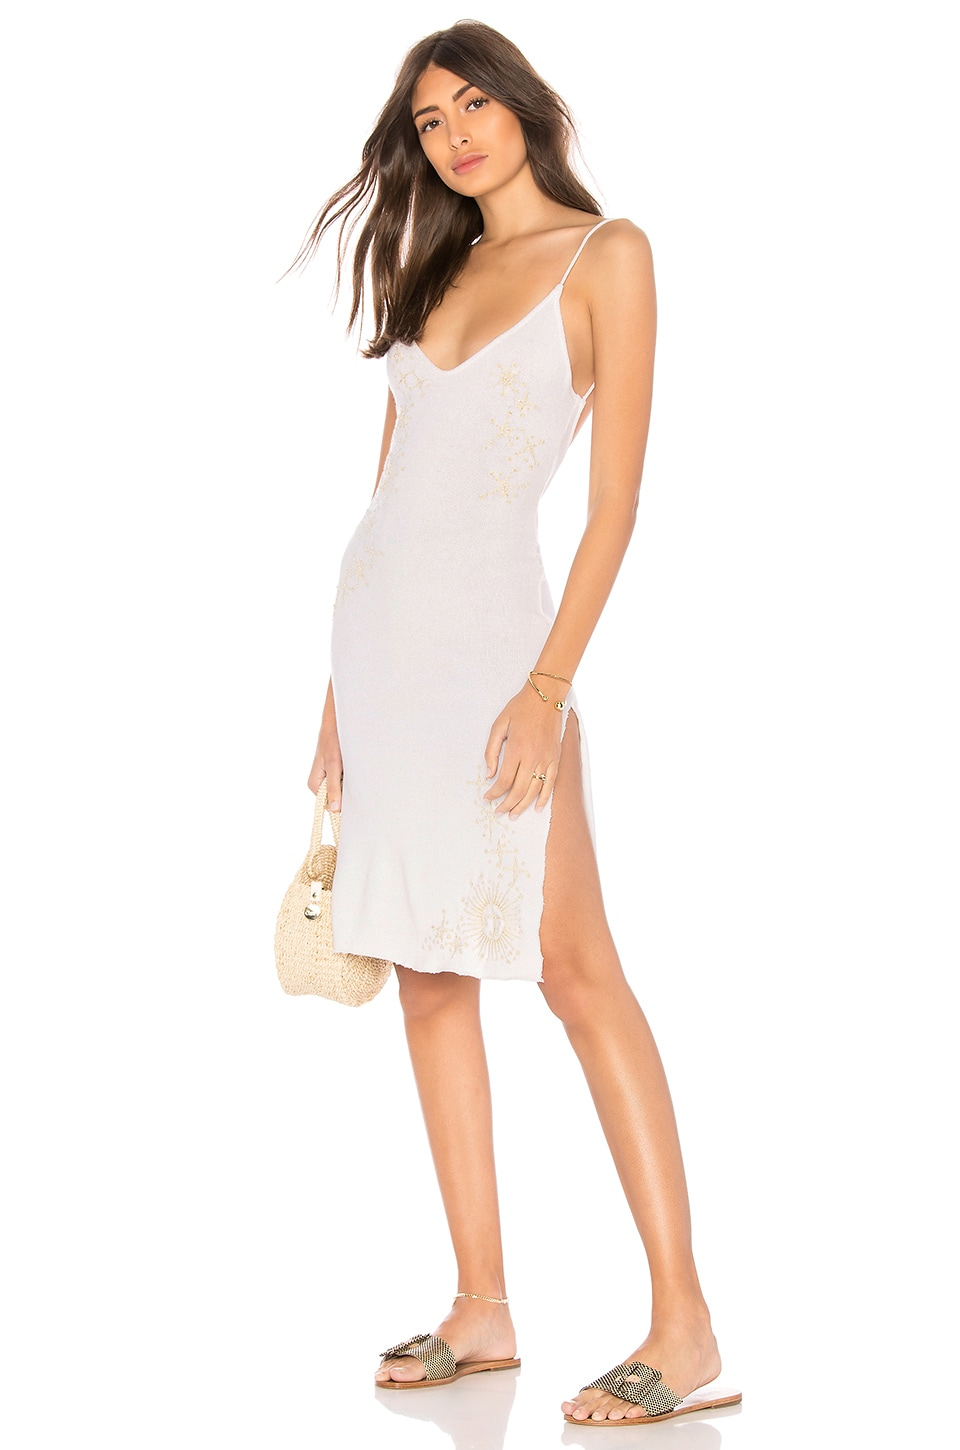 IN YOUR ARMS X Revolve Natuur Dress in White